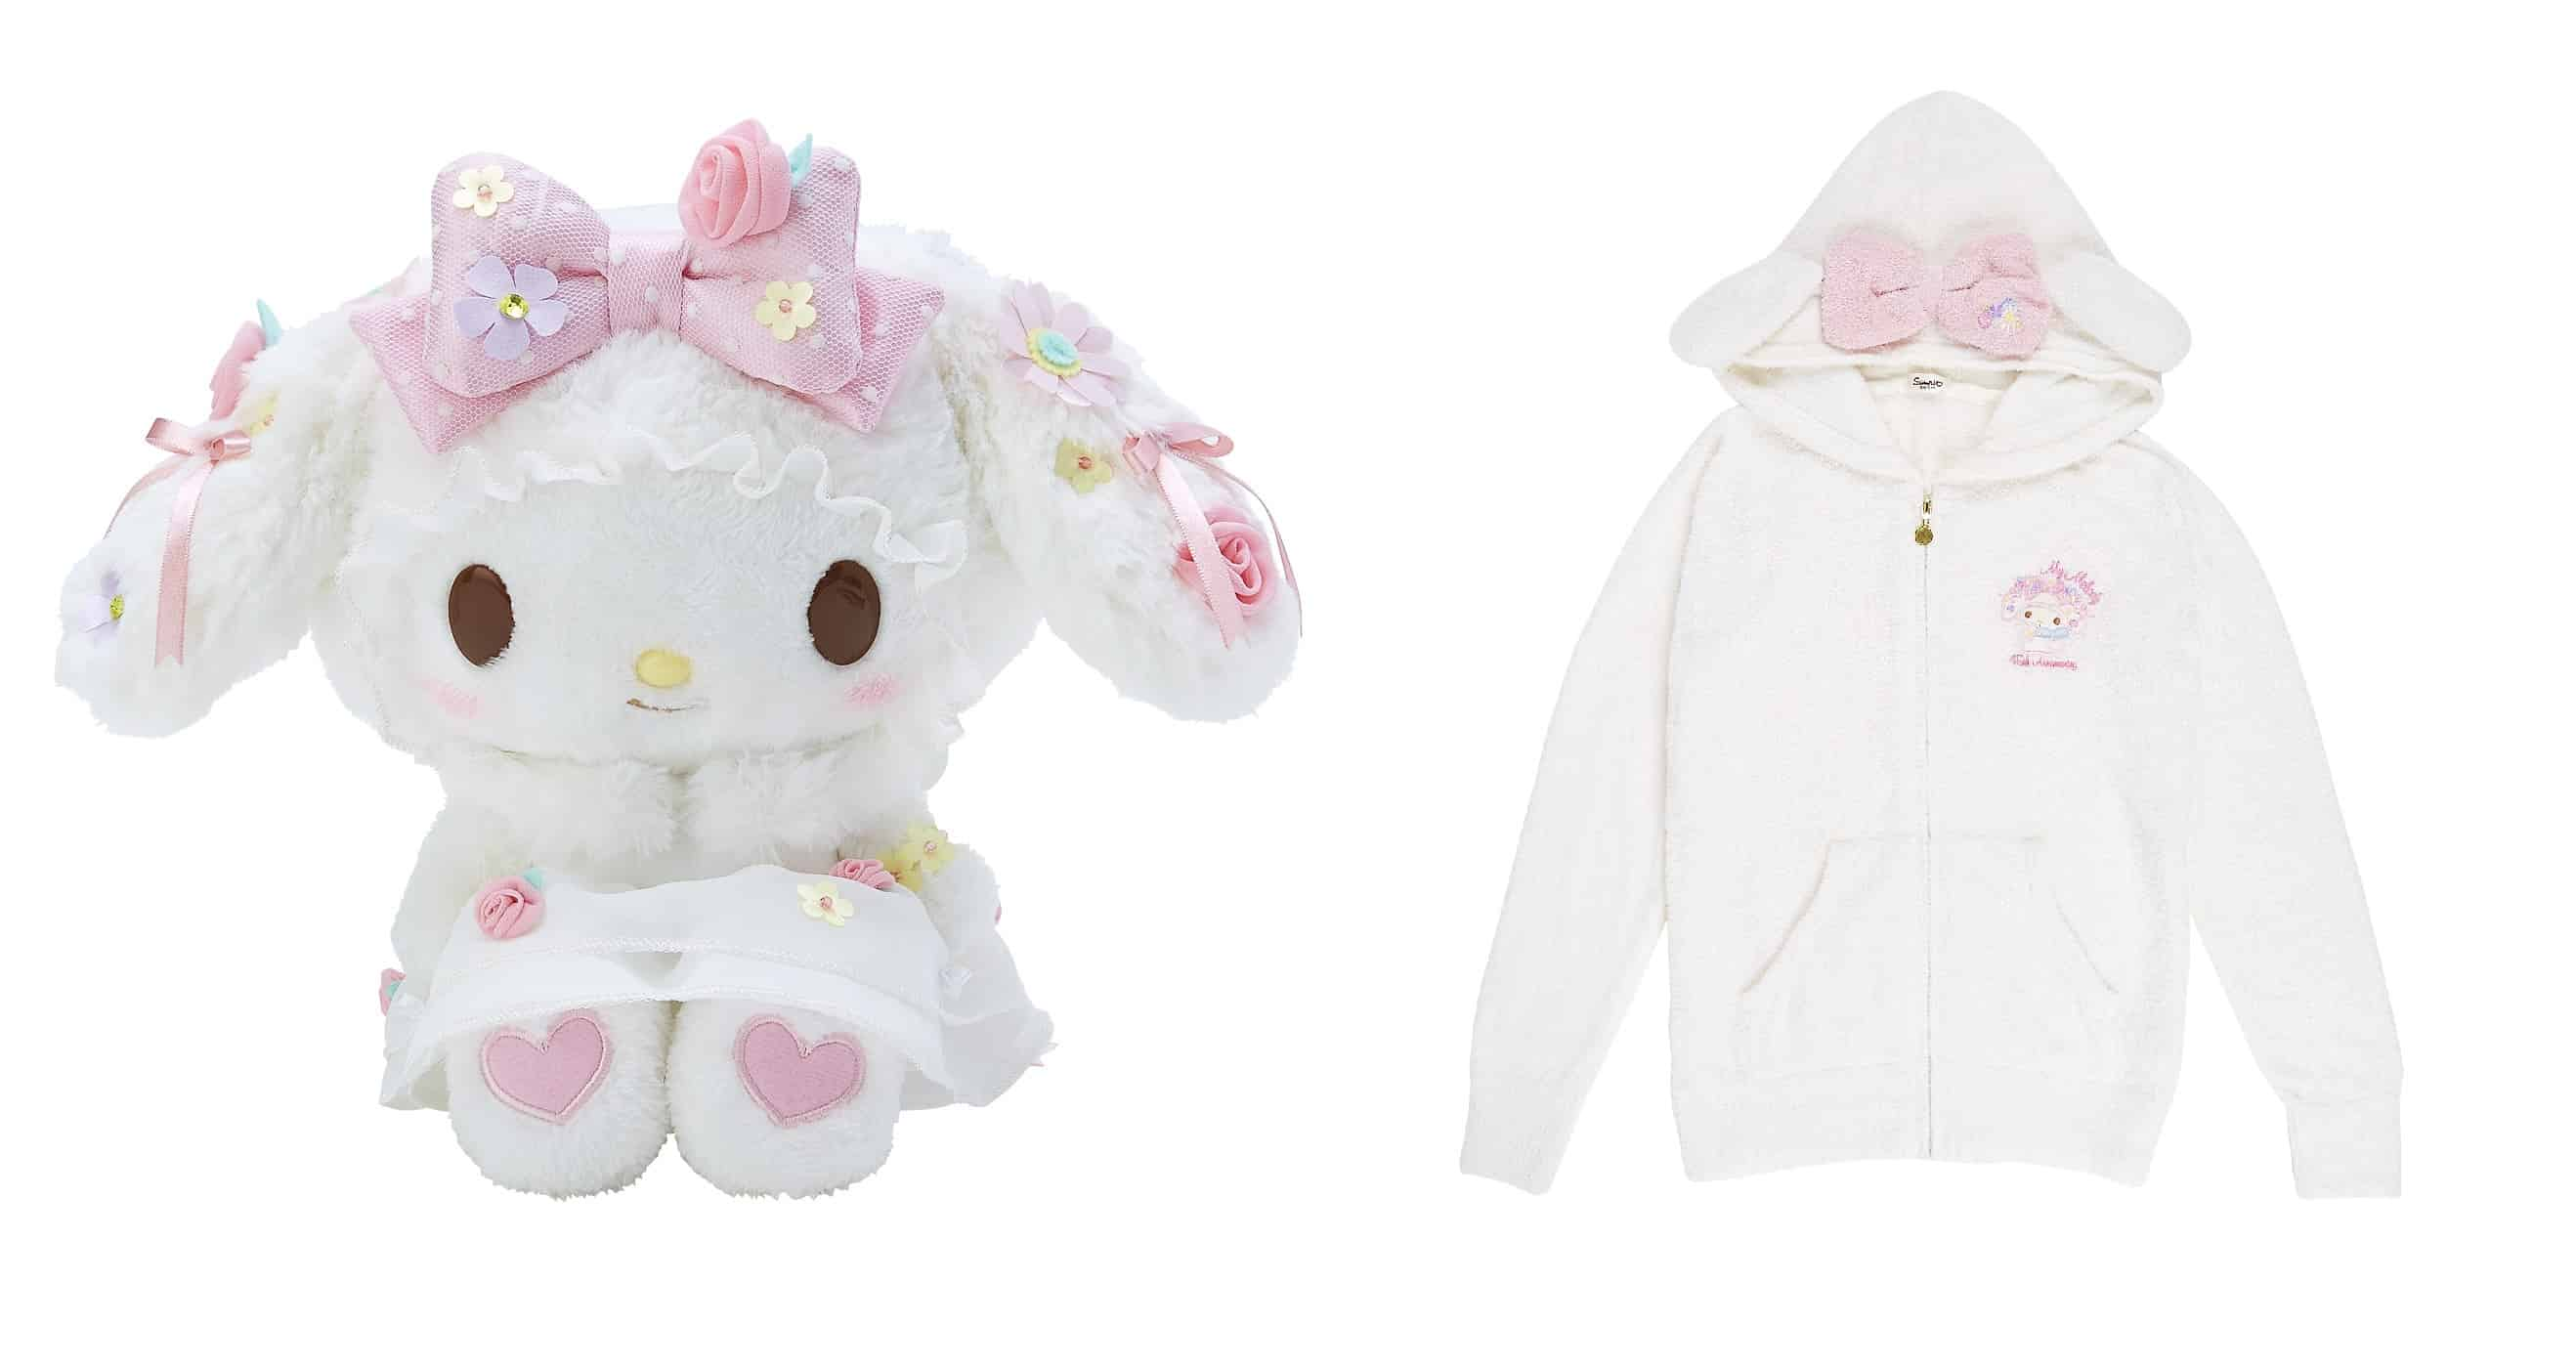 Products Limited Edition My Melody 45th Anniversary